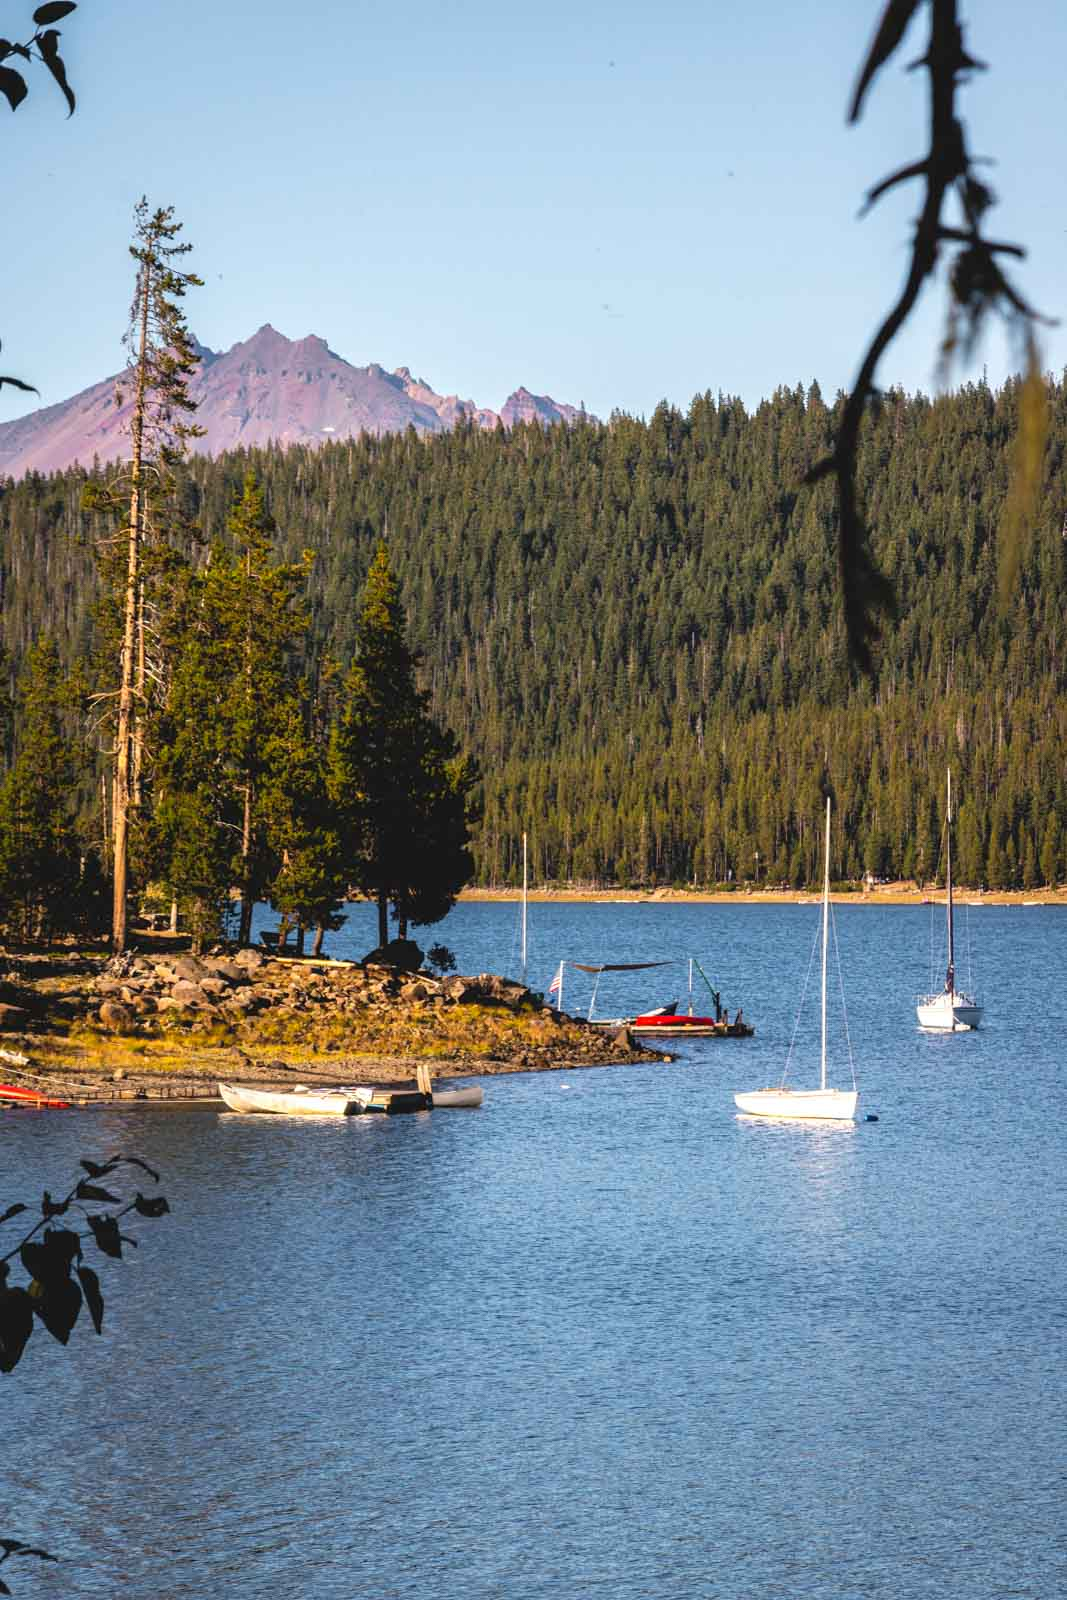 The view of the mountain at Elk Lake near the Cascade Lakes is beautiful.